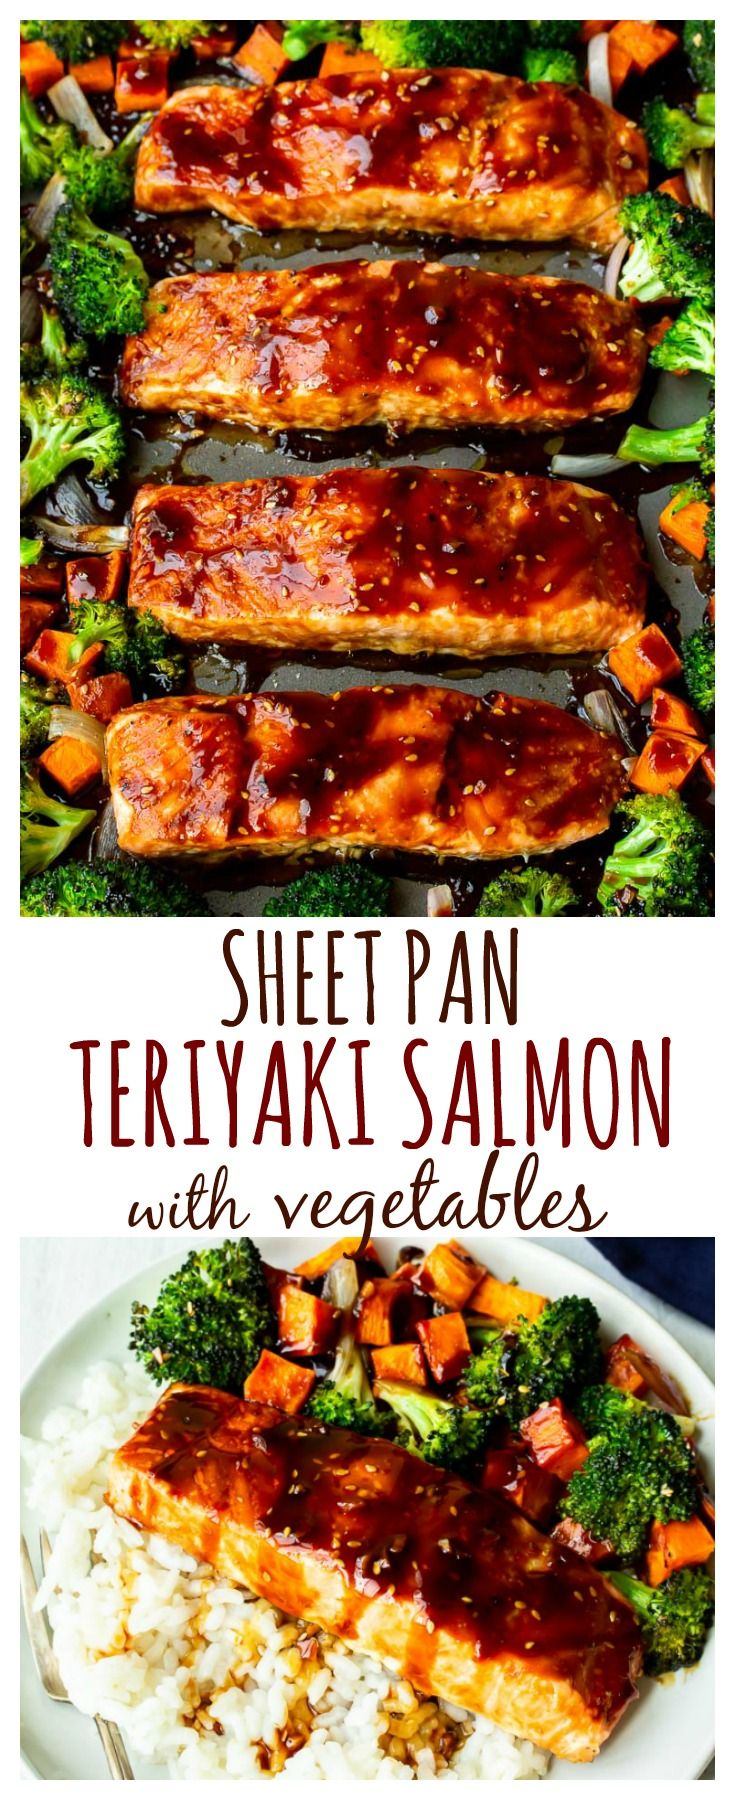 Easy Sheet Pan Teriyaki Salmon and Vegetables - Delicious Little Bites